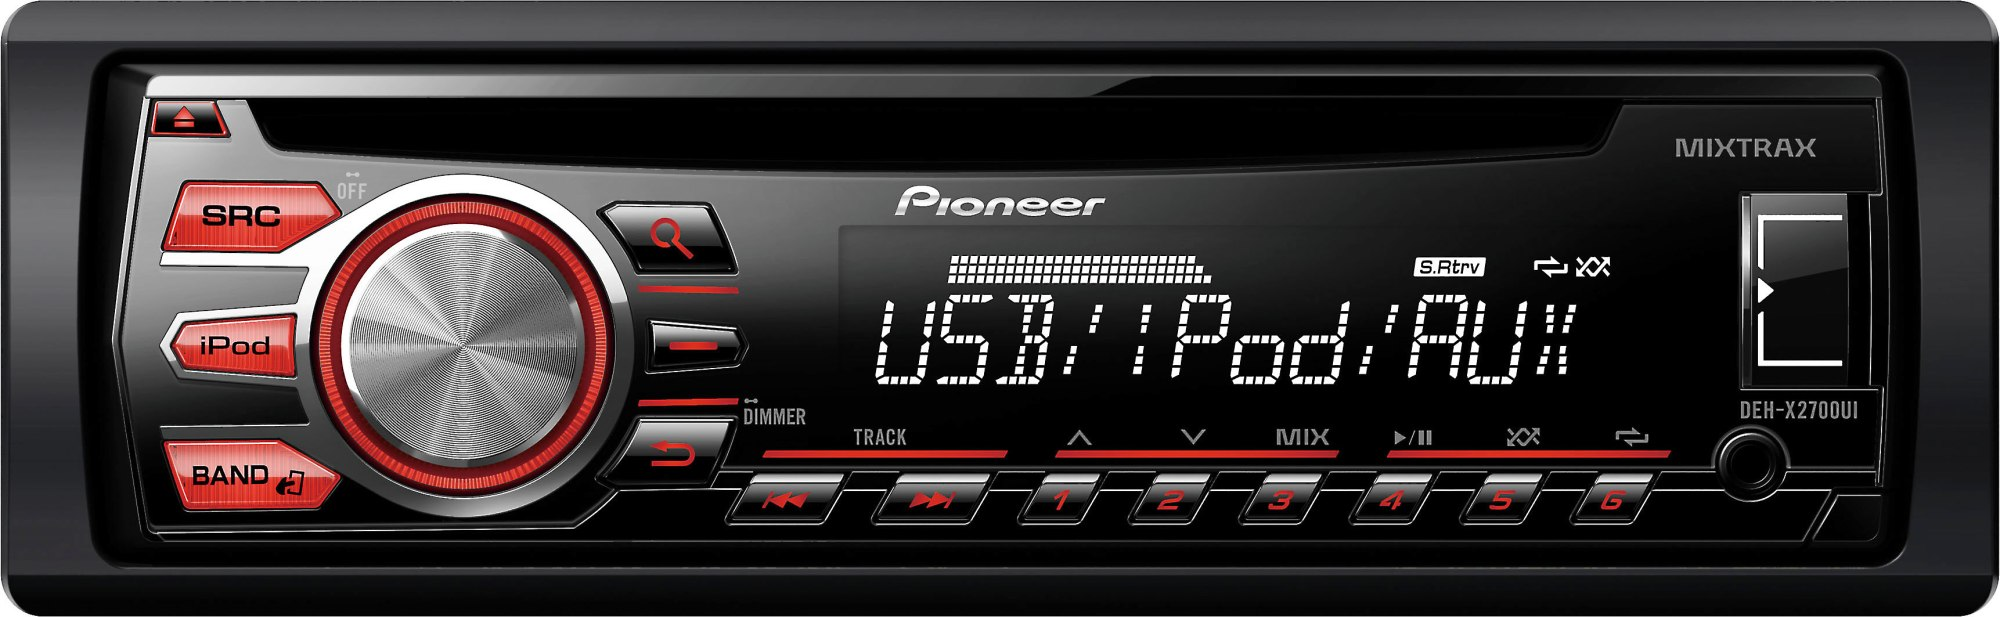 hight resolution of pioneer cd player deh x2700ui wiring diagram